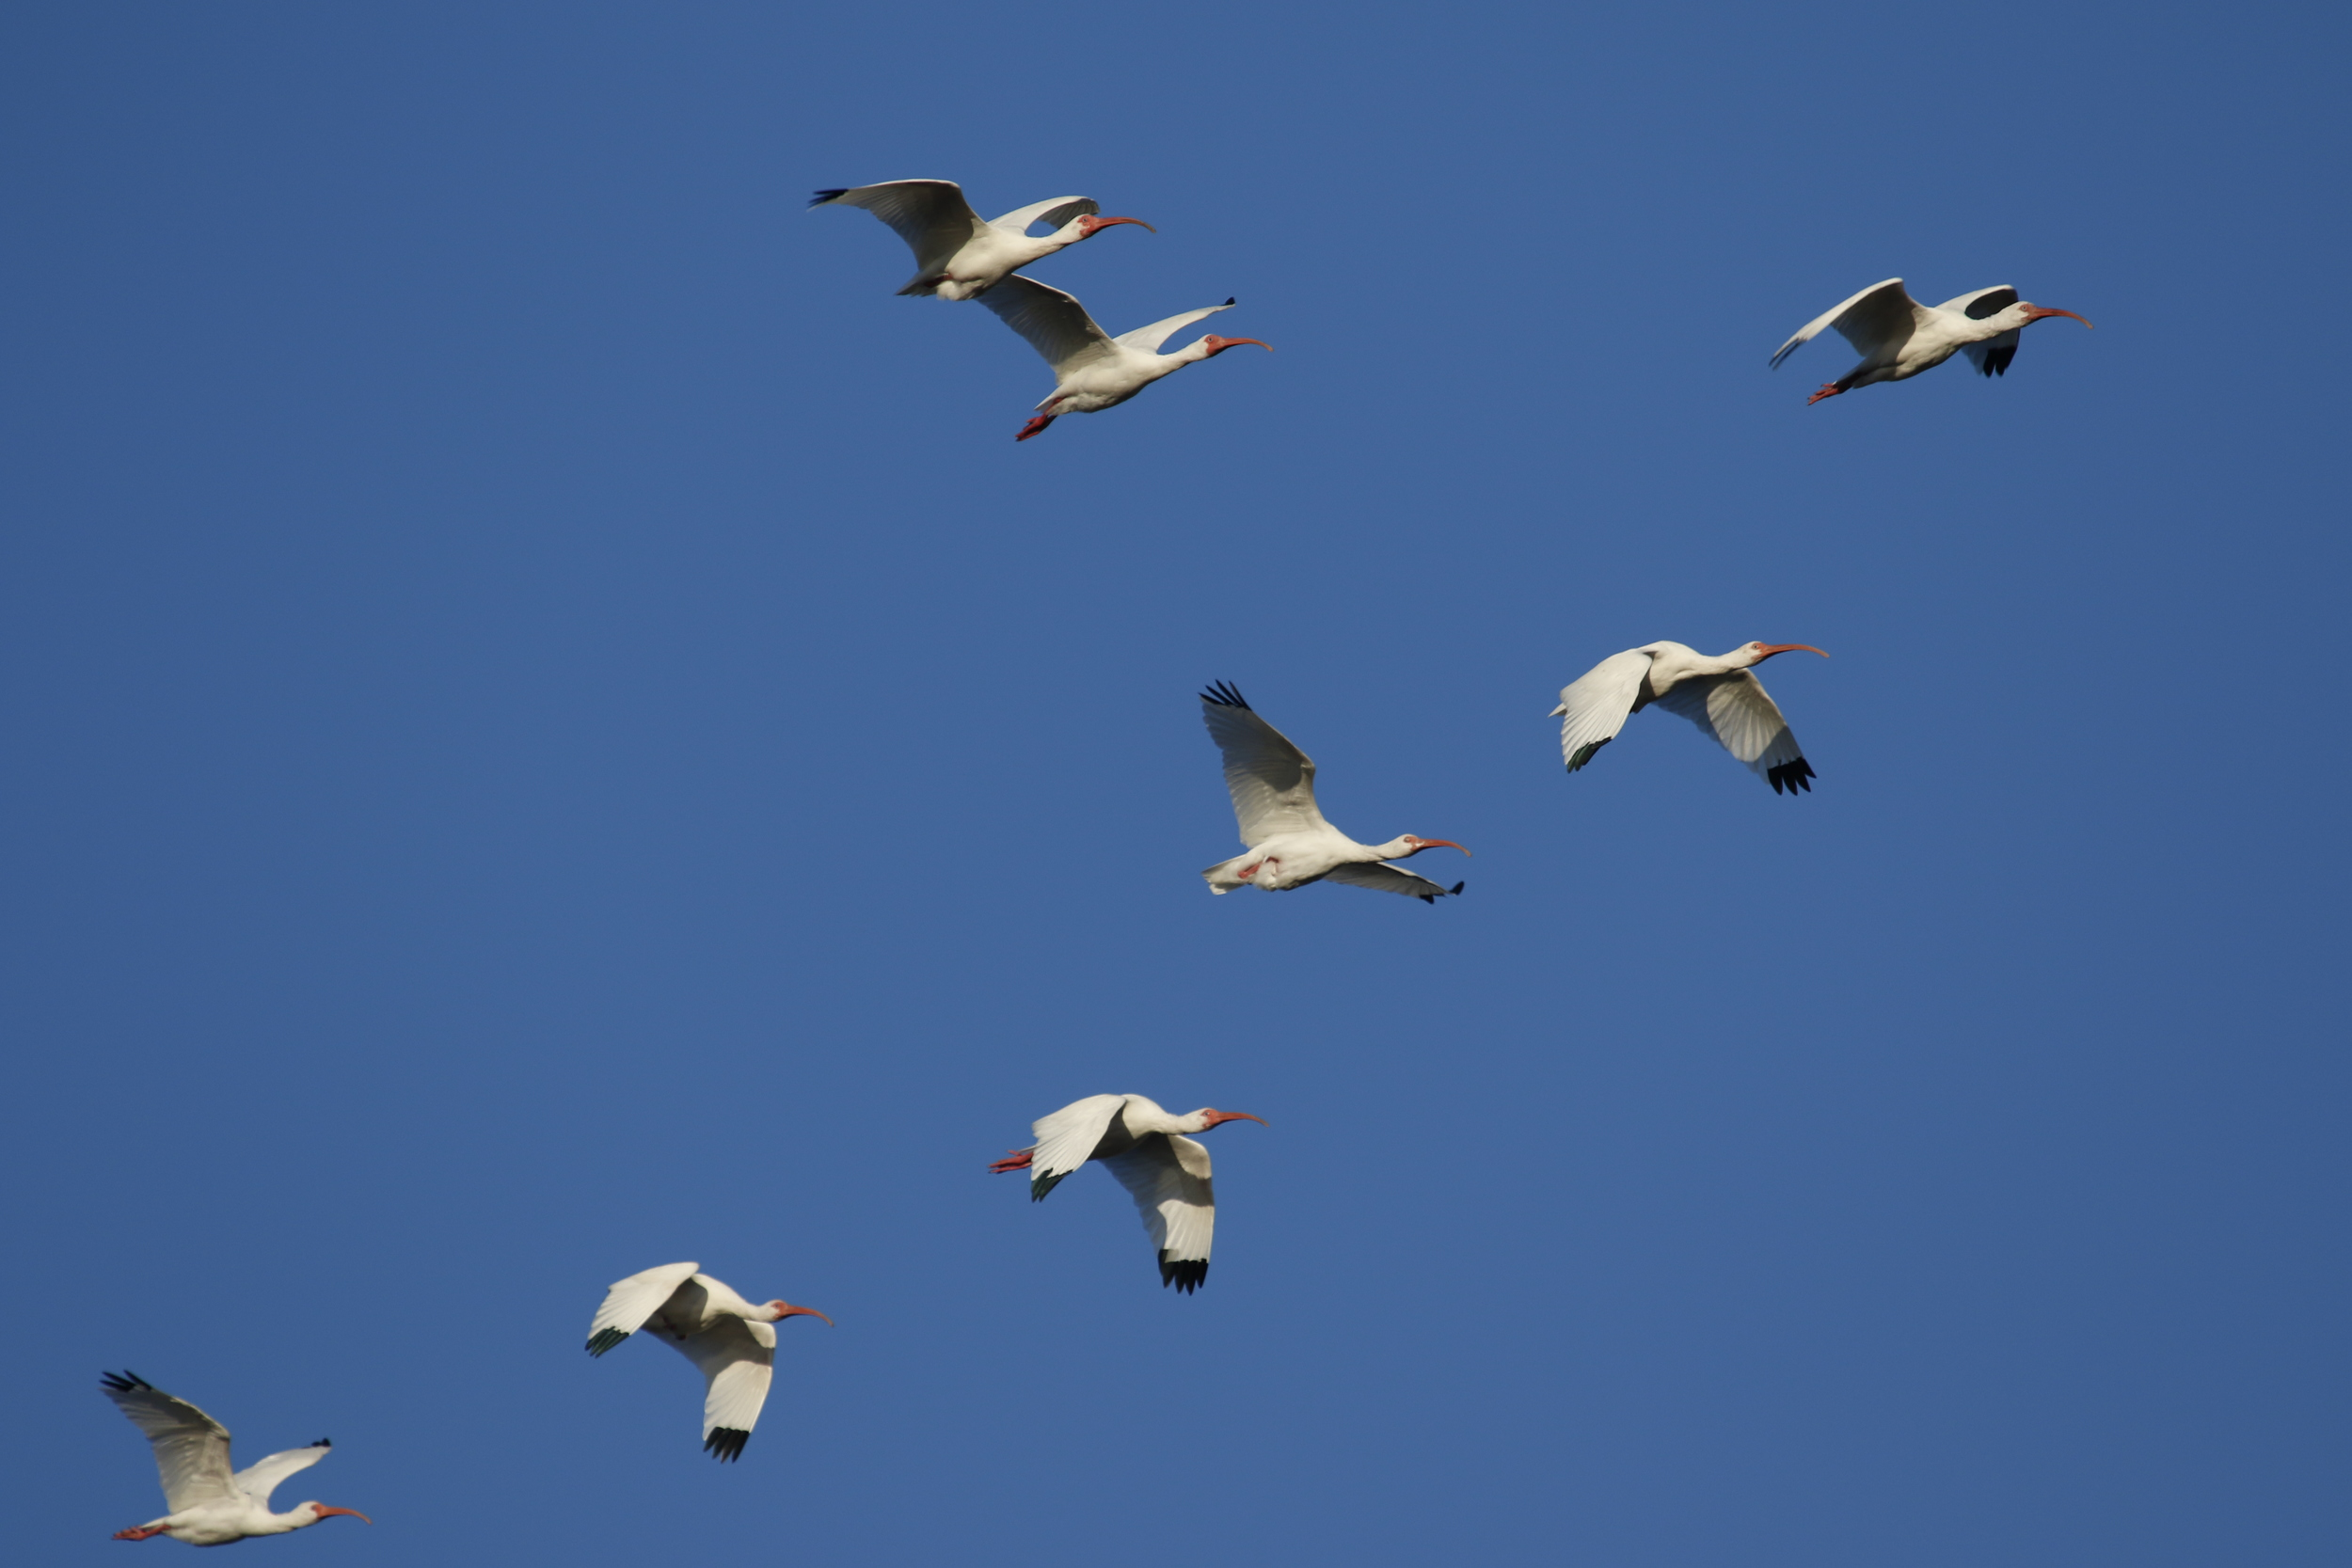 Recently I have seen a few small flocks of White Ibis heading north on their return migration. Wonder if they will stop by again this year?